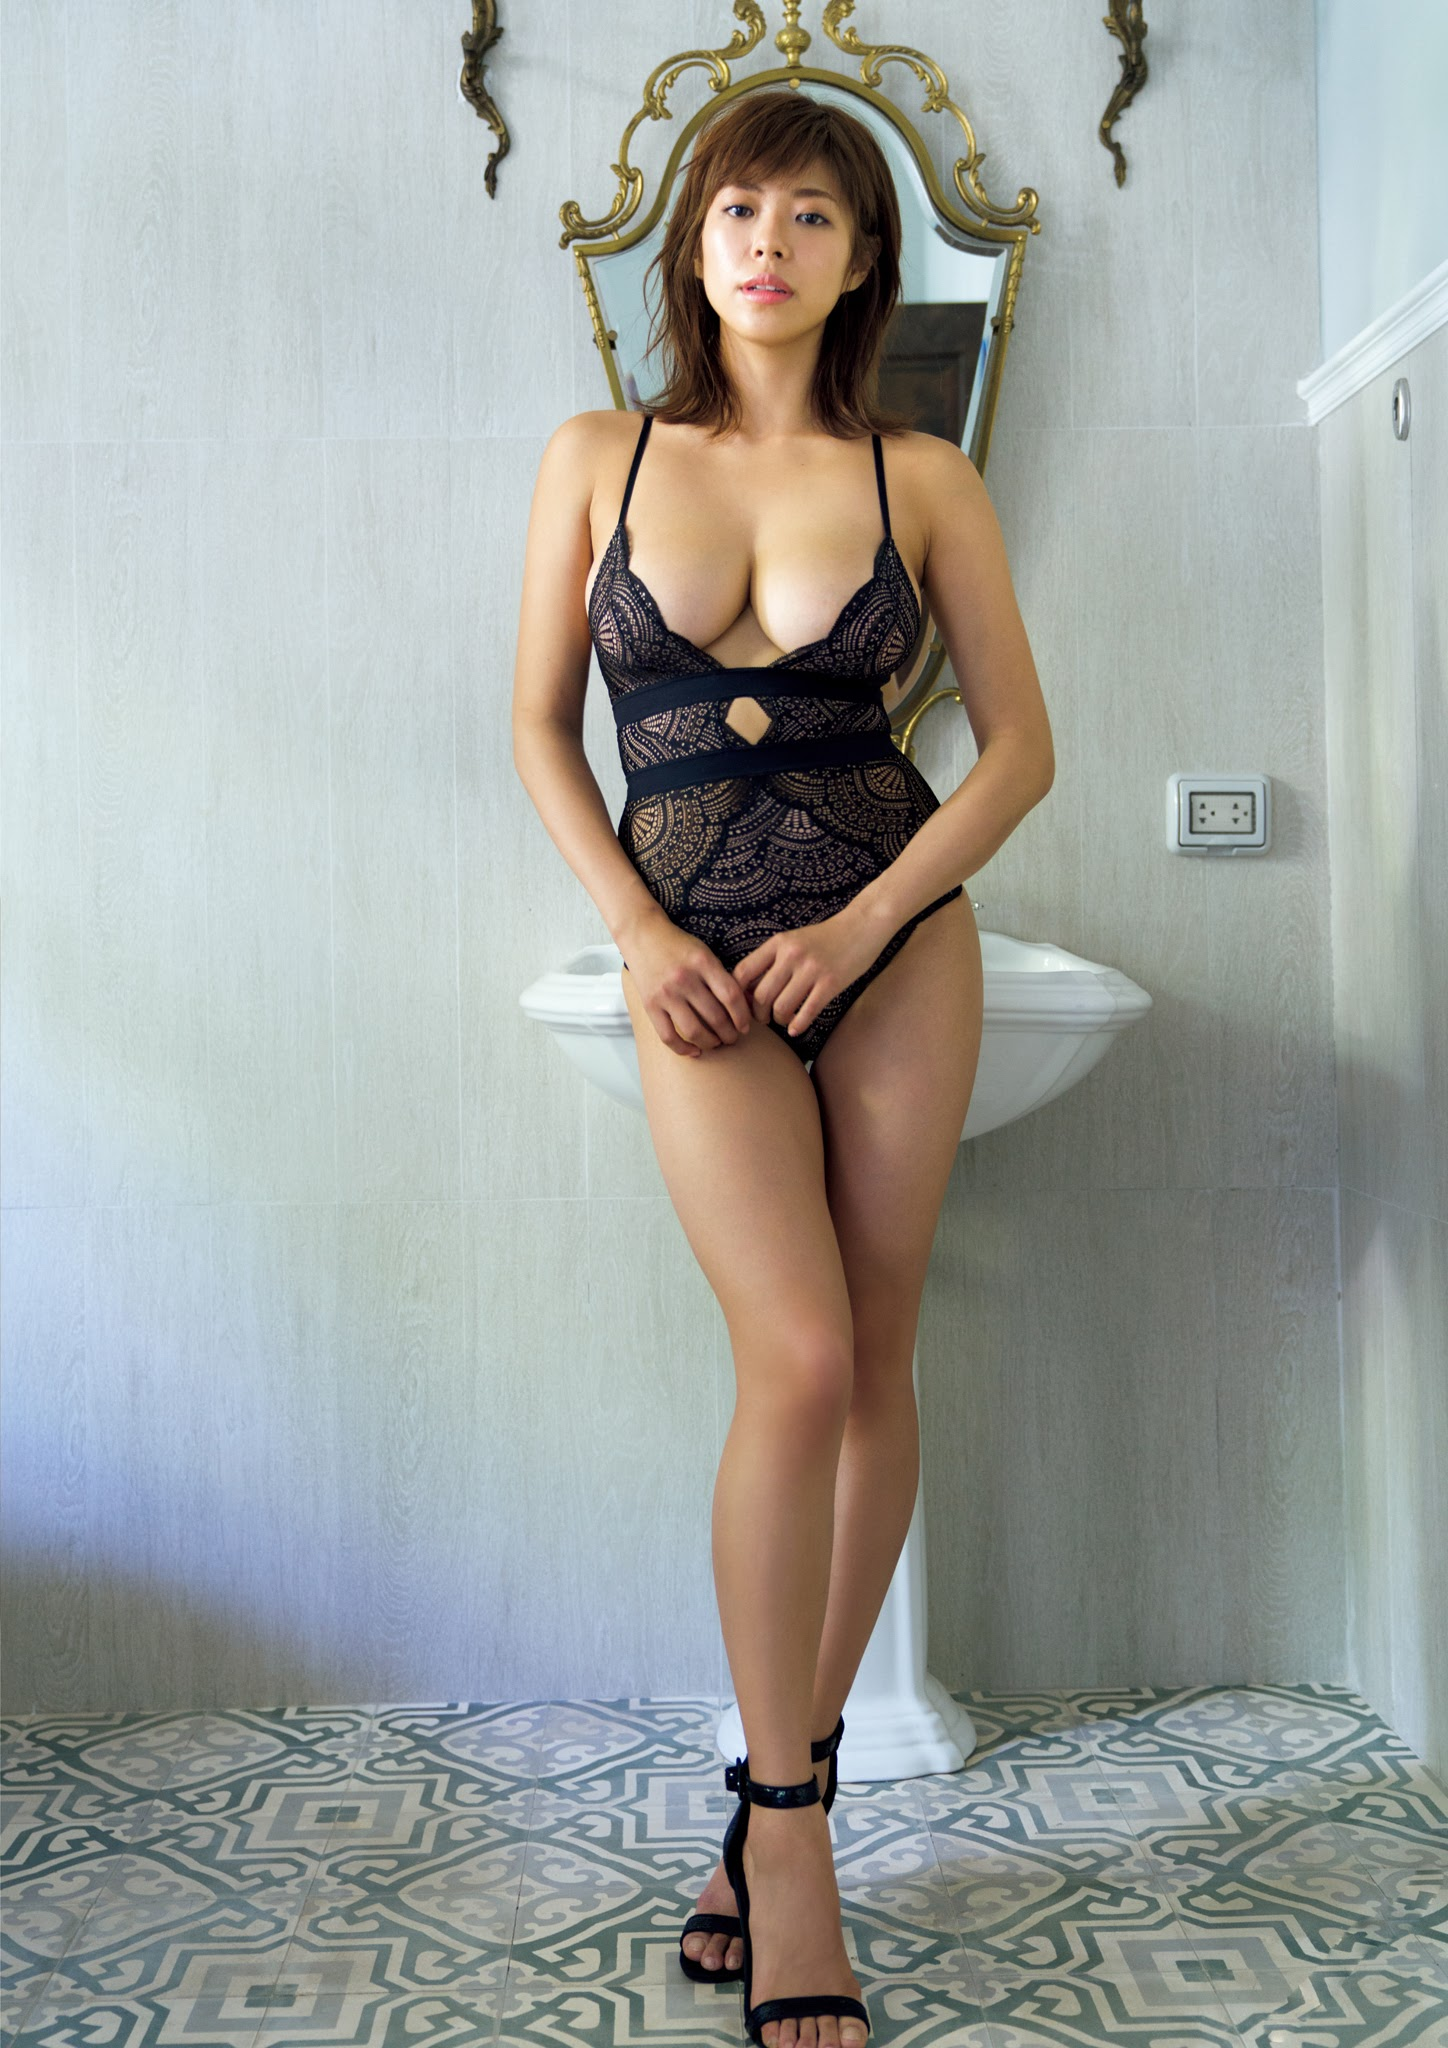 Super body of H cup Minami Wachi 2020 that exposes body and mind in tropical Thailand062